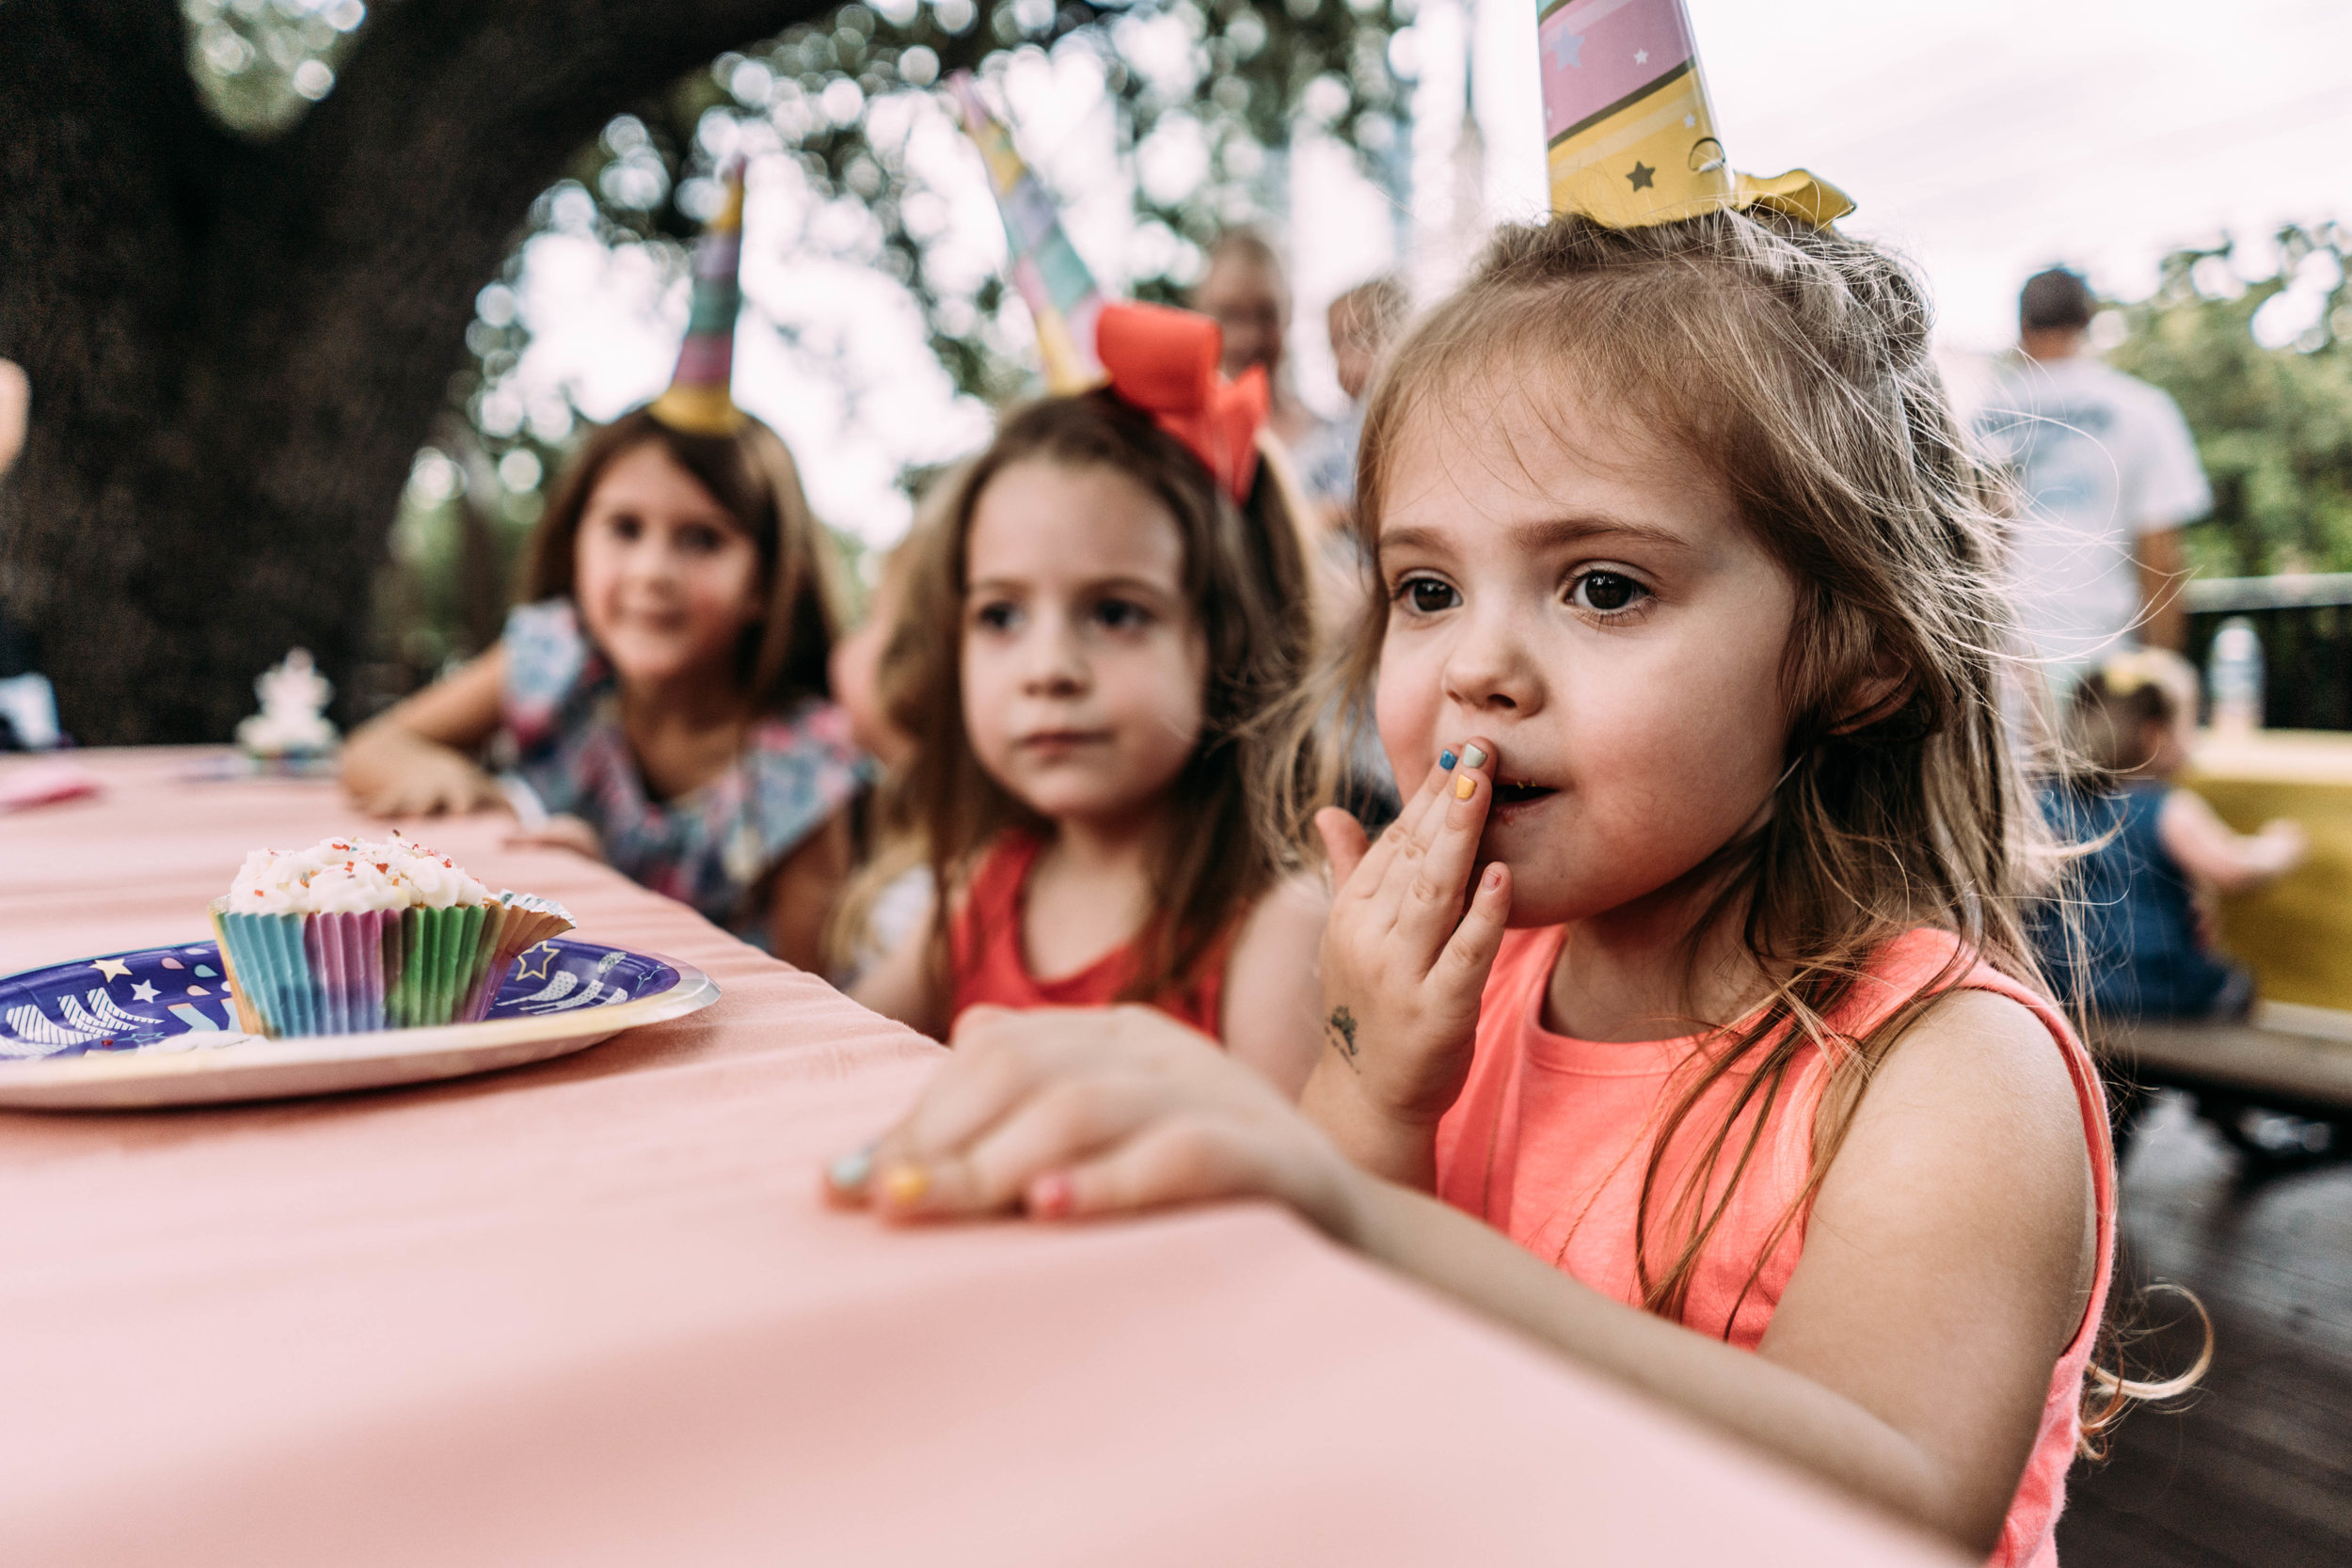 birthday party at the park-26.jpg